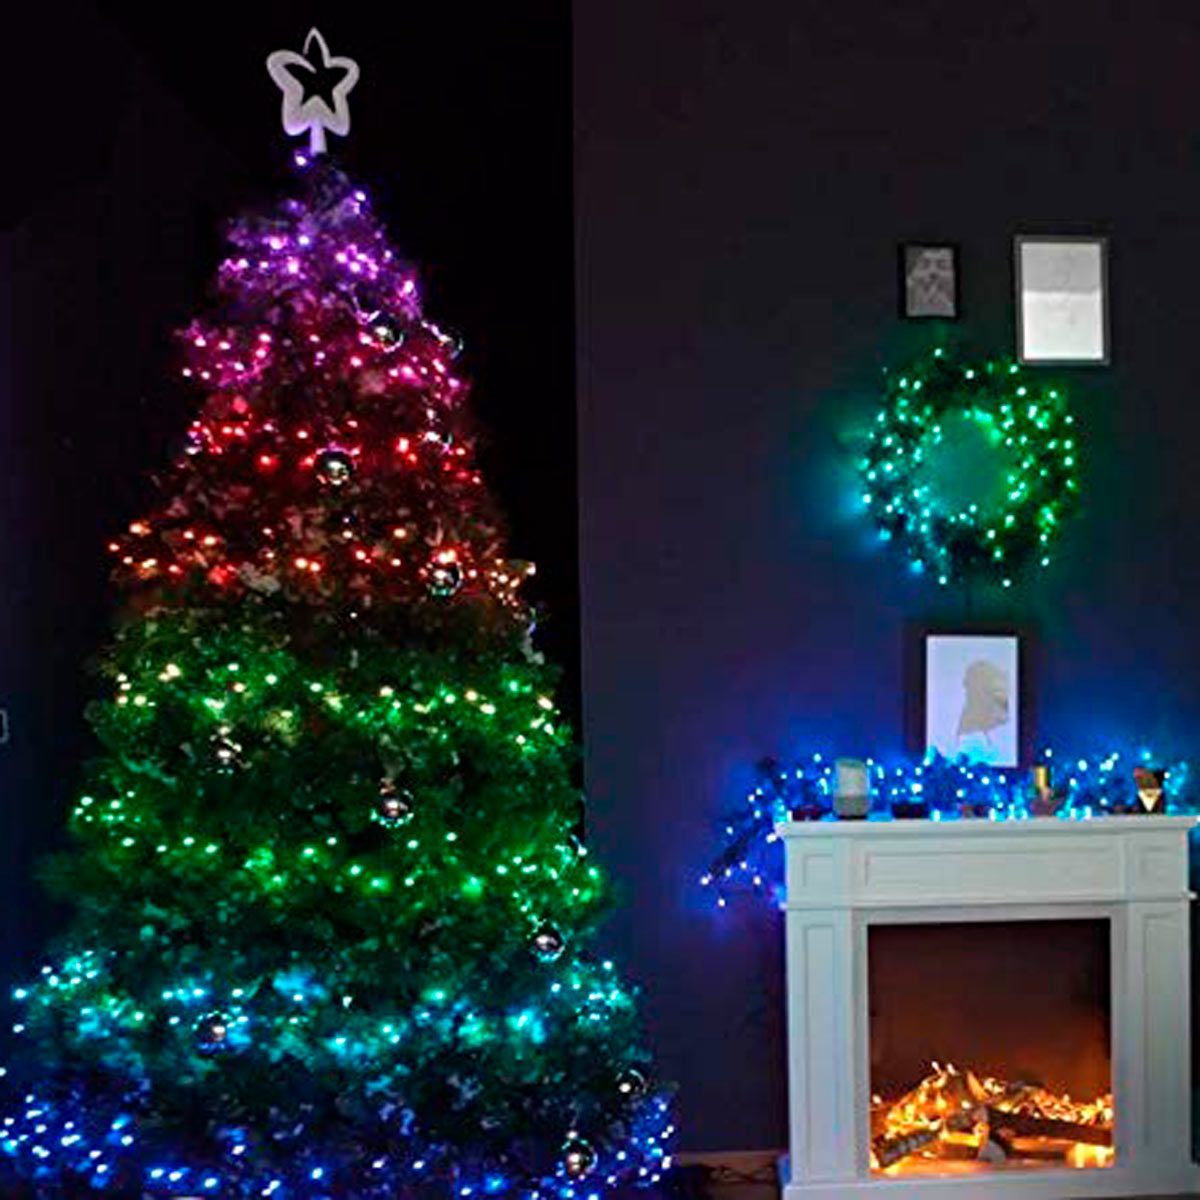 Dazzle Your Holiday Guests With These Smart Home Trends